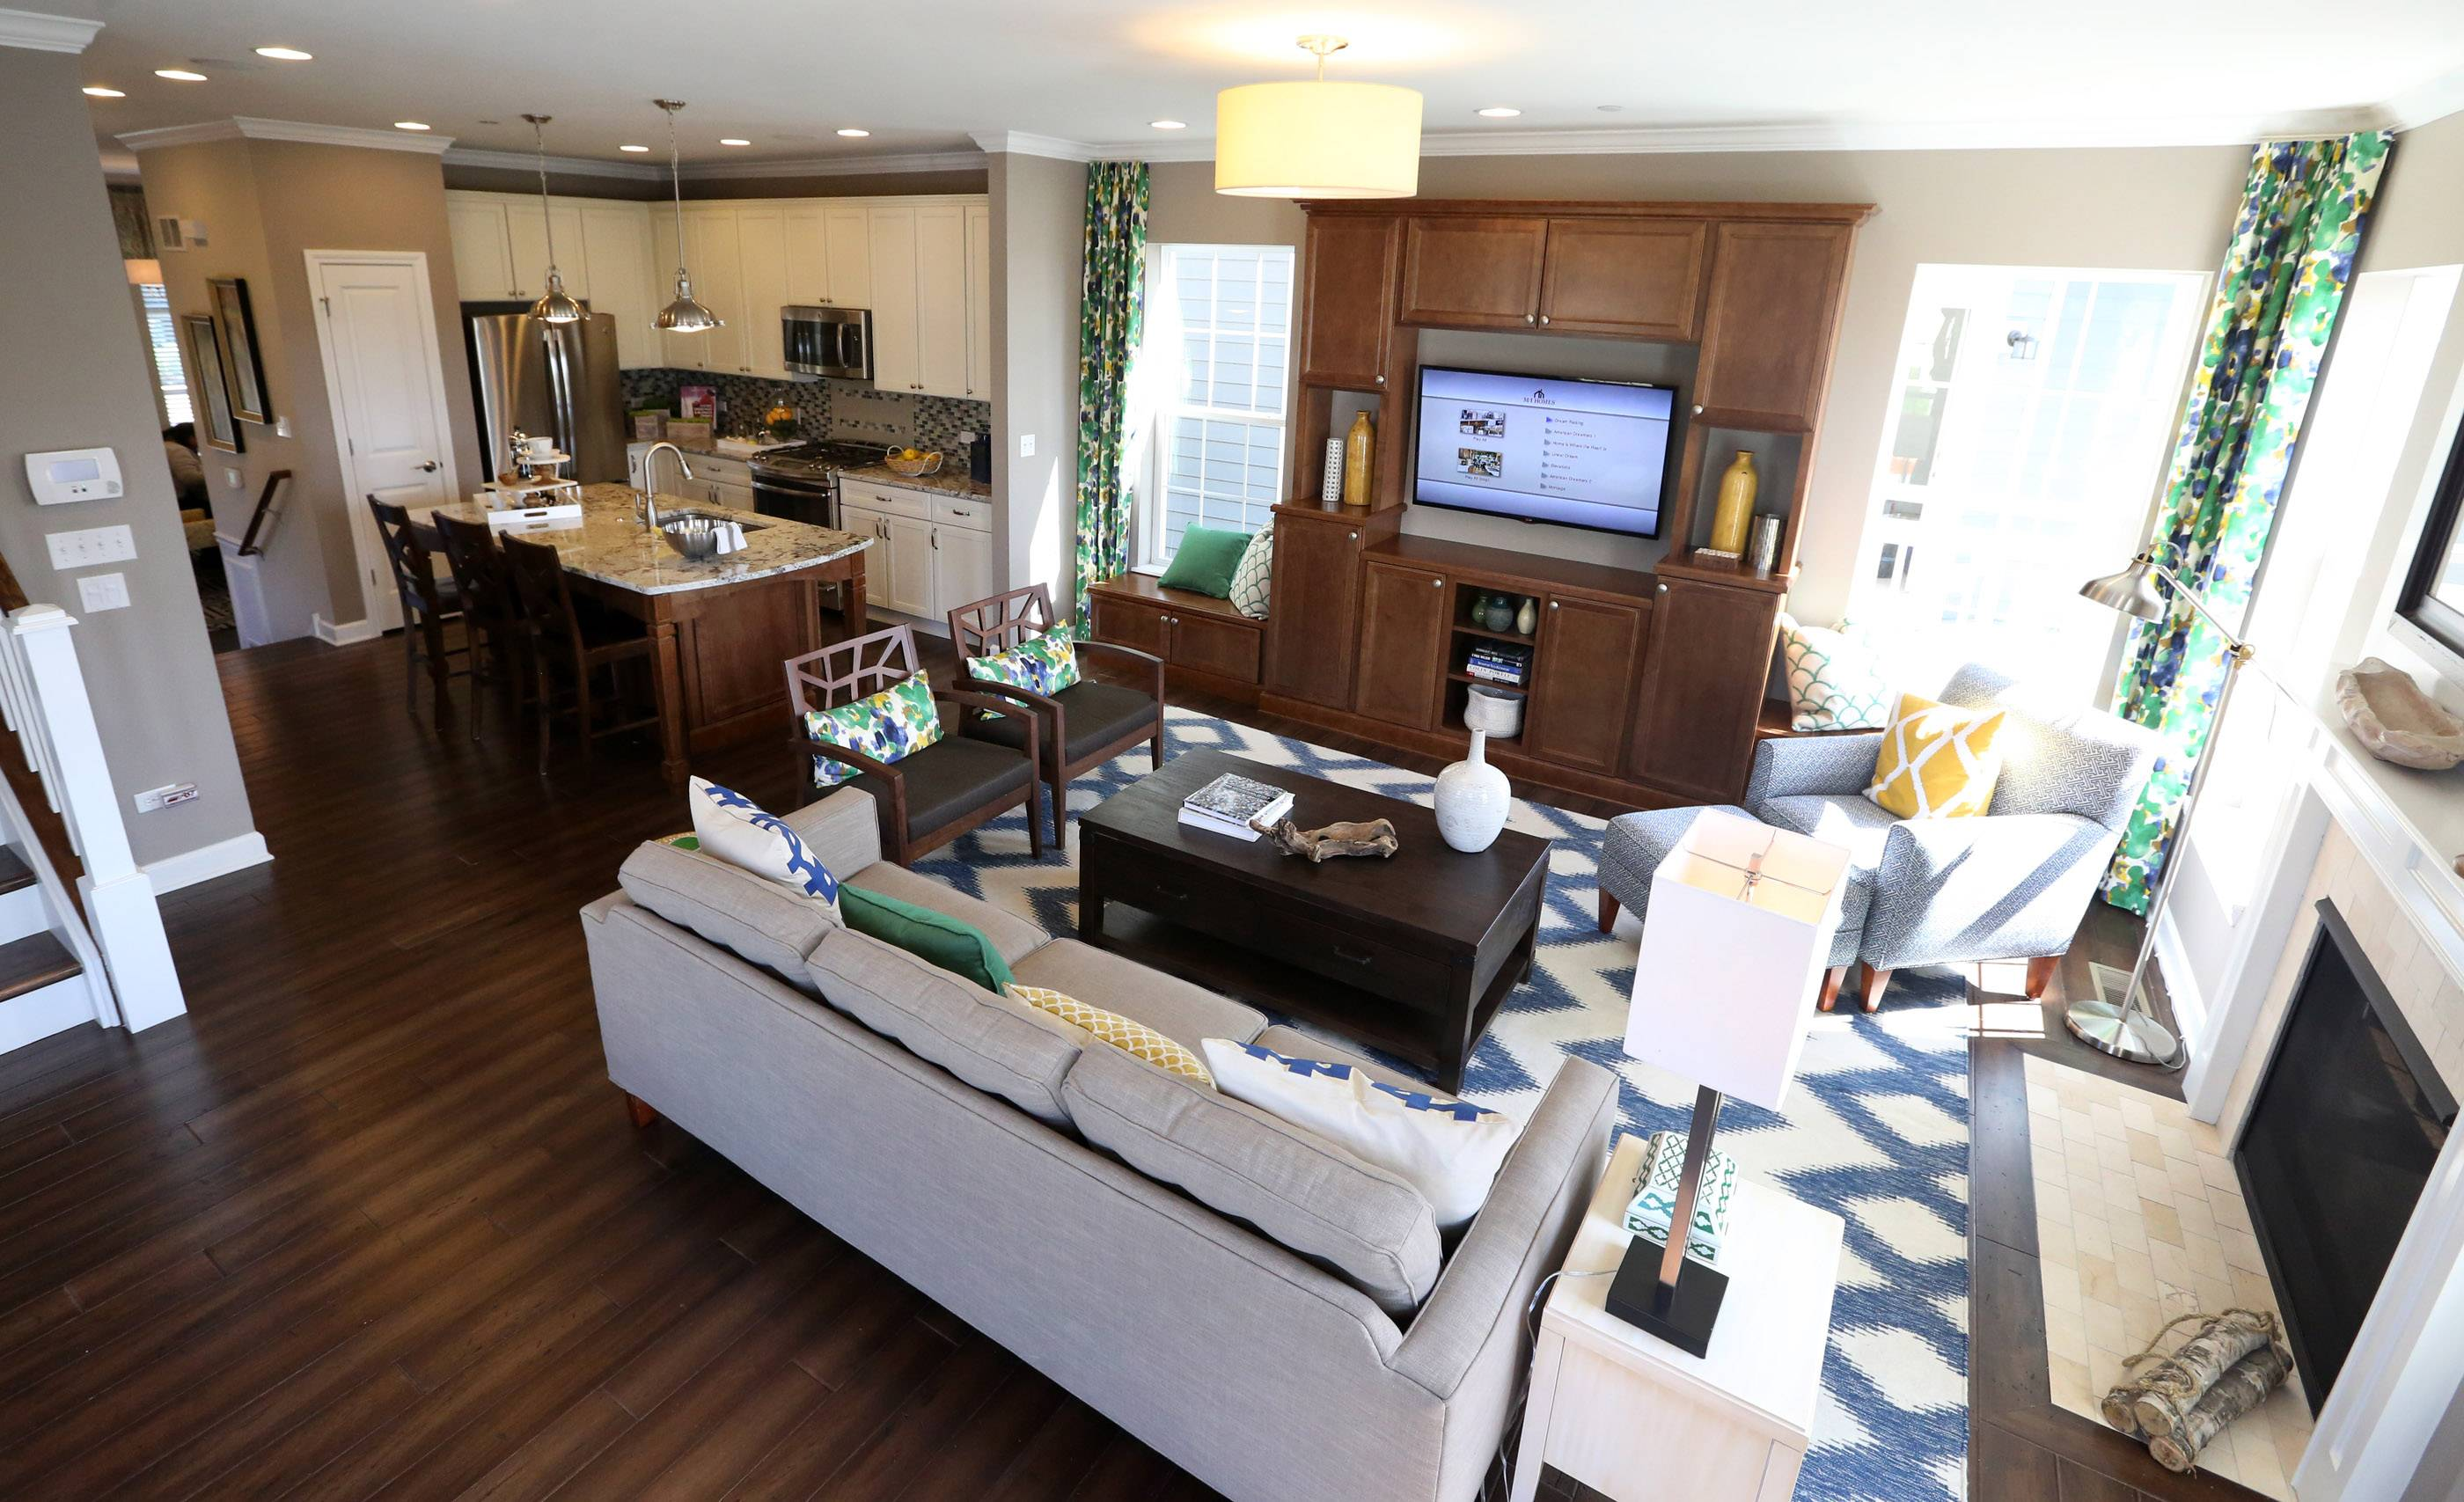 Living room and kitchen in Chelsea model at Arlington Market in Arlington Heights.